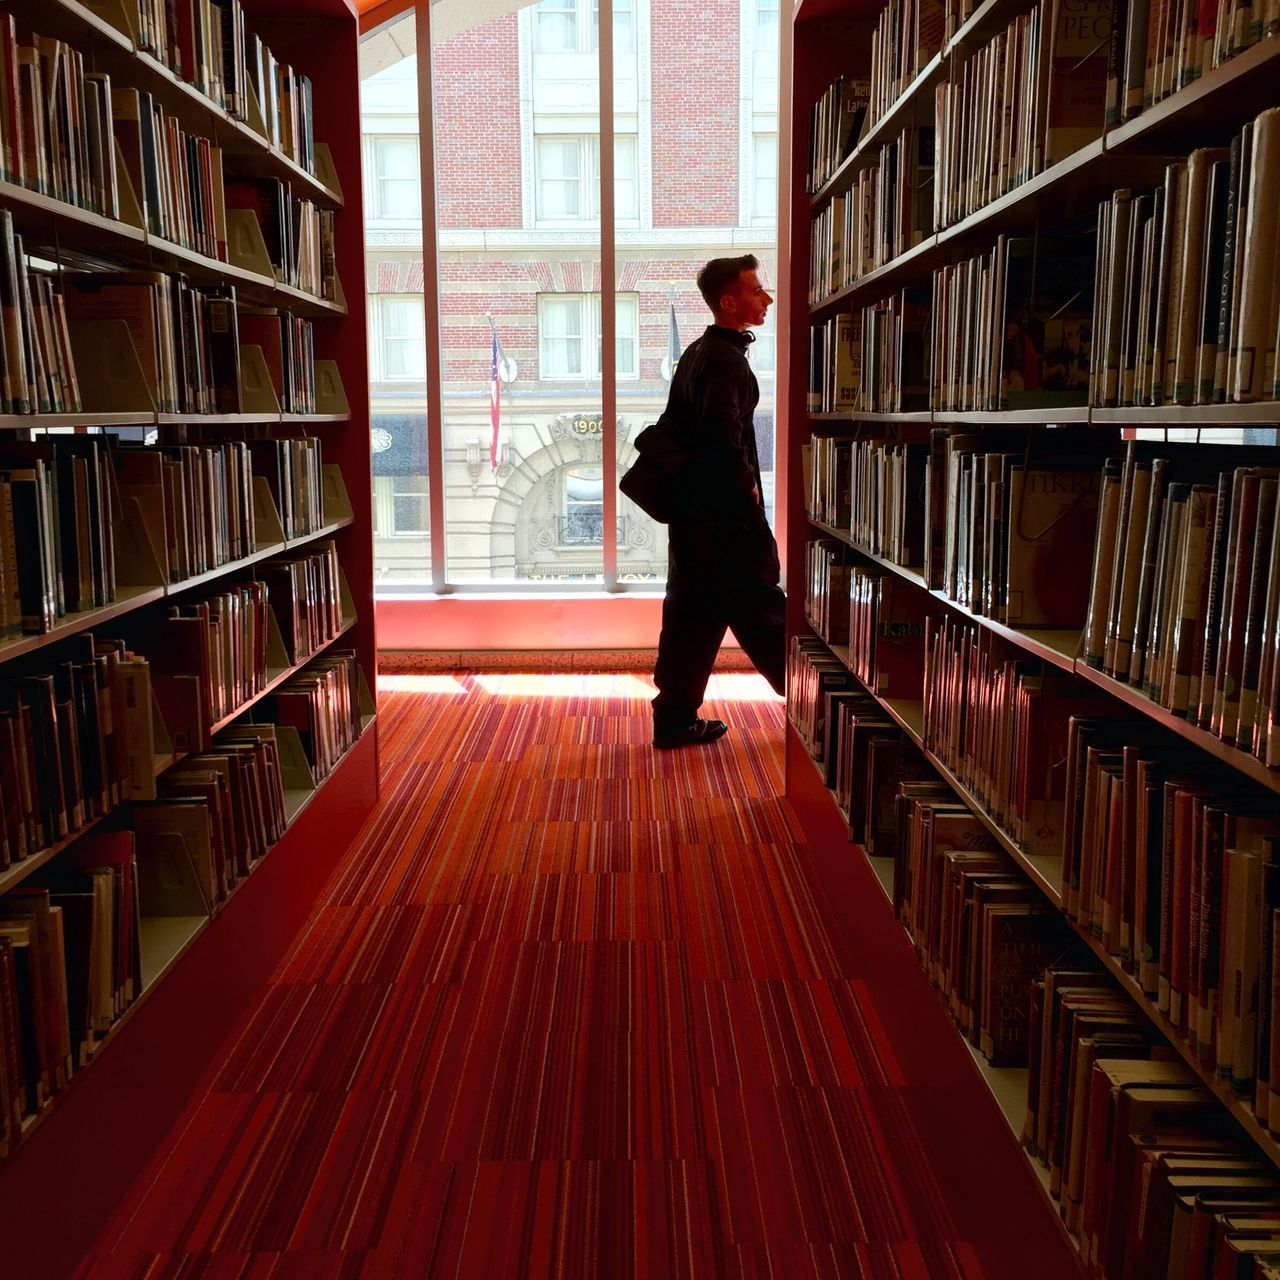 bookshelf, library, book, shelf, indoors, one person, education, rear view, full length, real people, research, lifestyles, men, learning, student, women, adult, day, adults only, young adult, people, only men